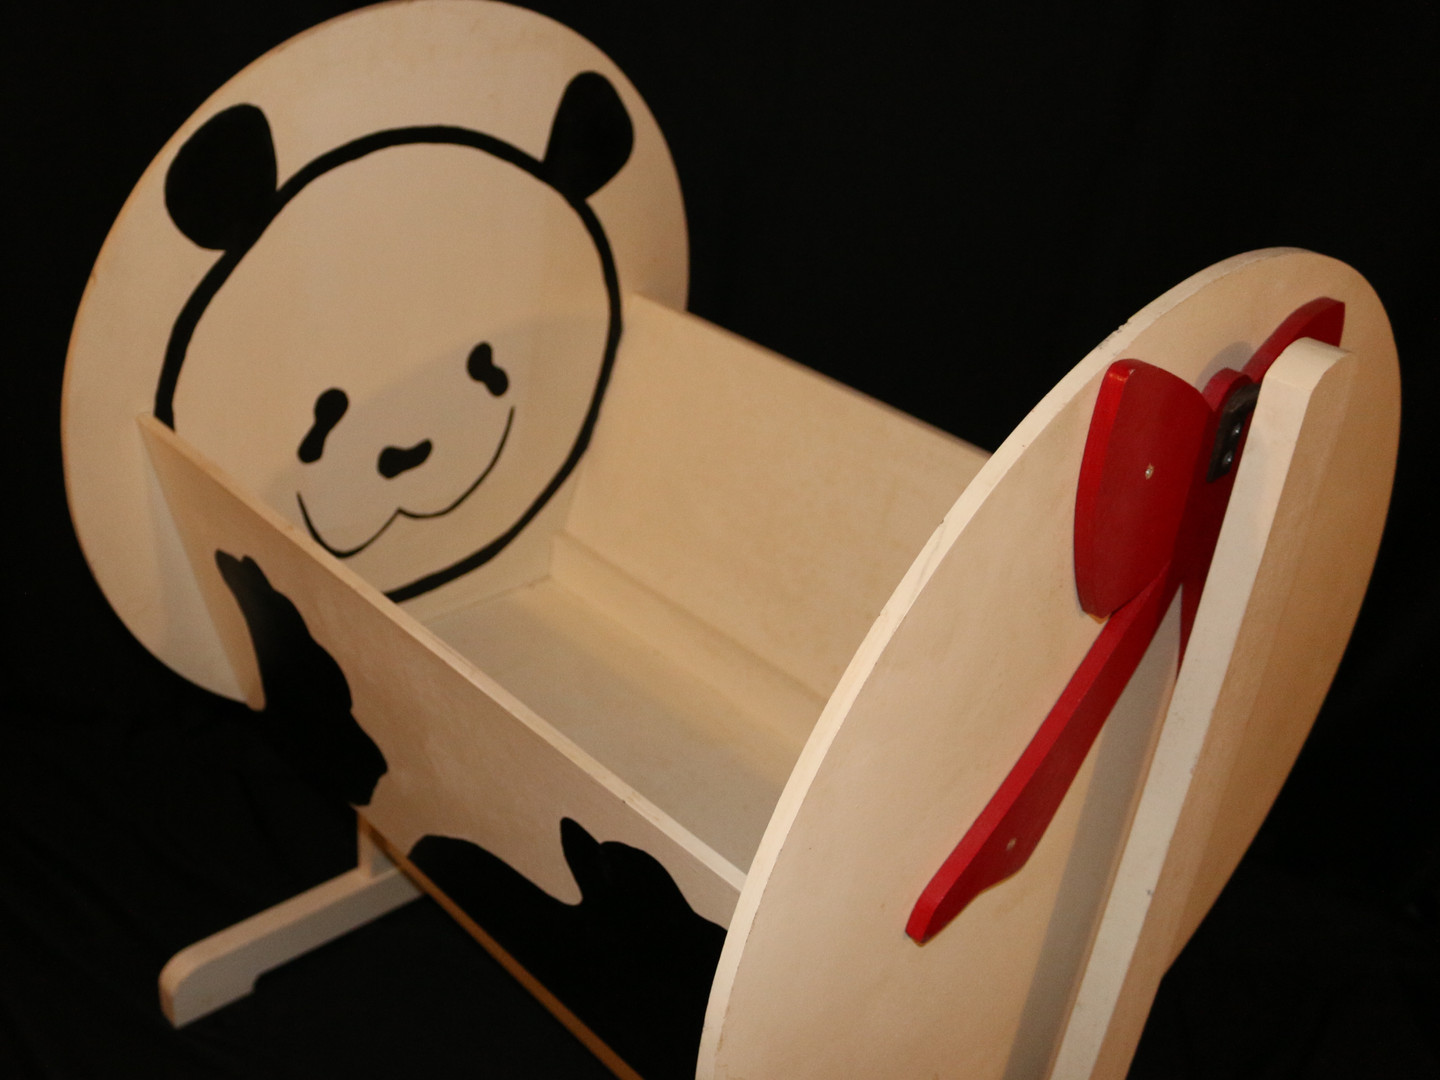 PANDLE CRADLE